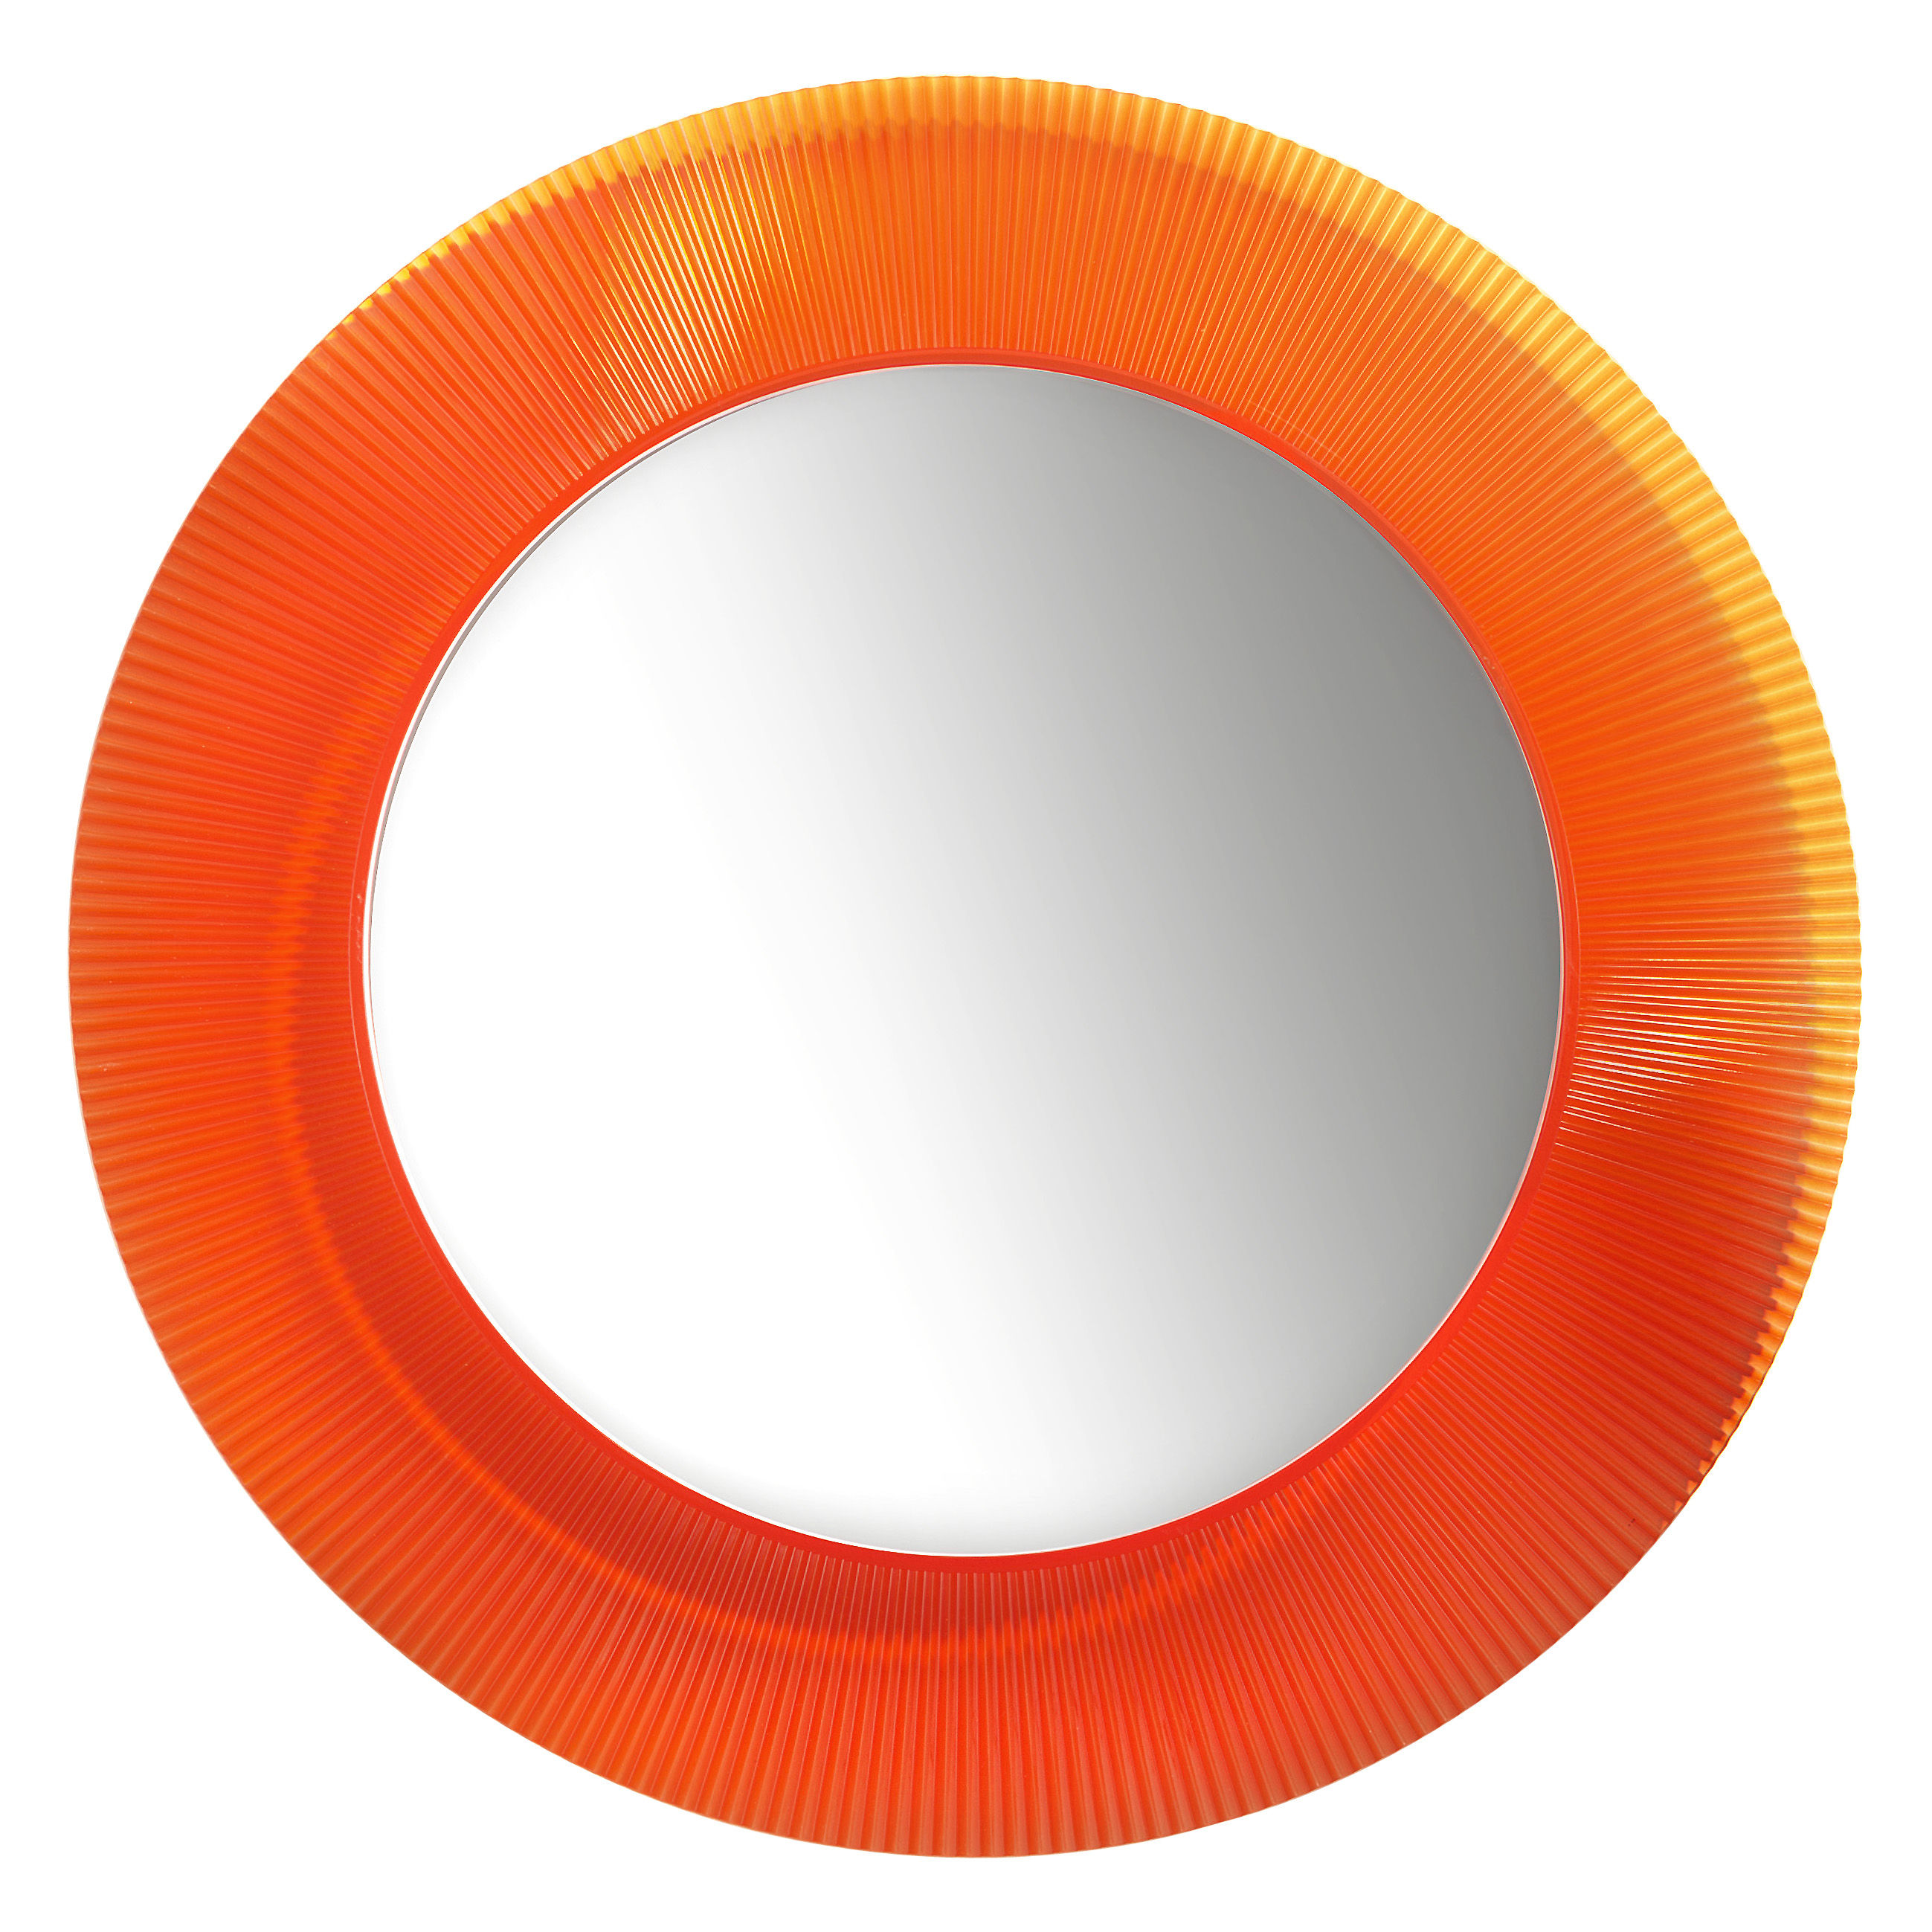 Accessories - Bathroom Accessories - All Saints Wall mirror by Kartell - Tangerine Orange - PMMA